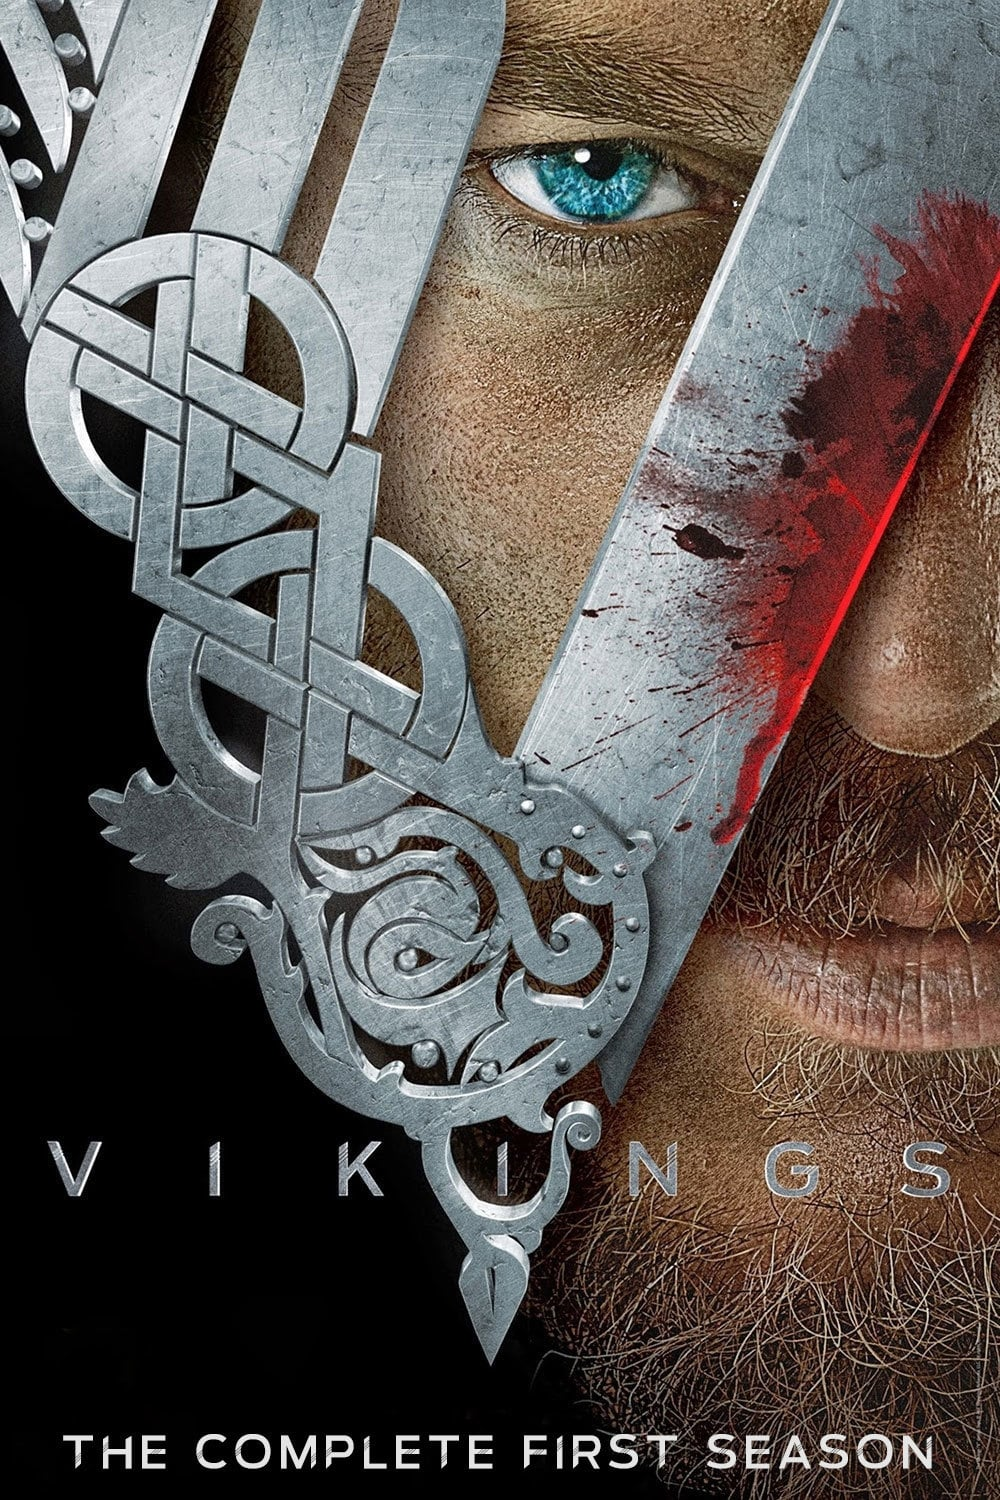 http://abroadlanguages.com/vikings-1a-temporada-2013-bdrip-bluray-720p-dublado-torrent/